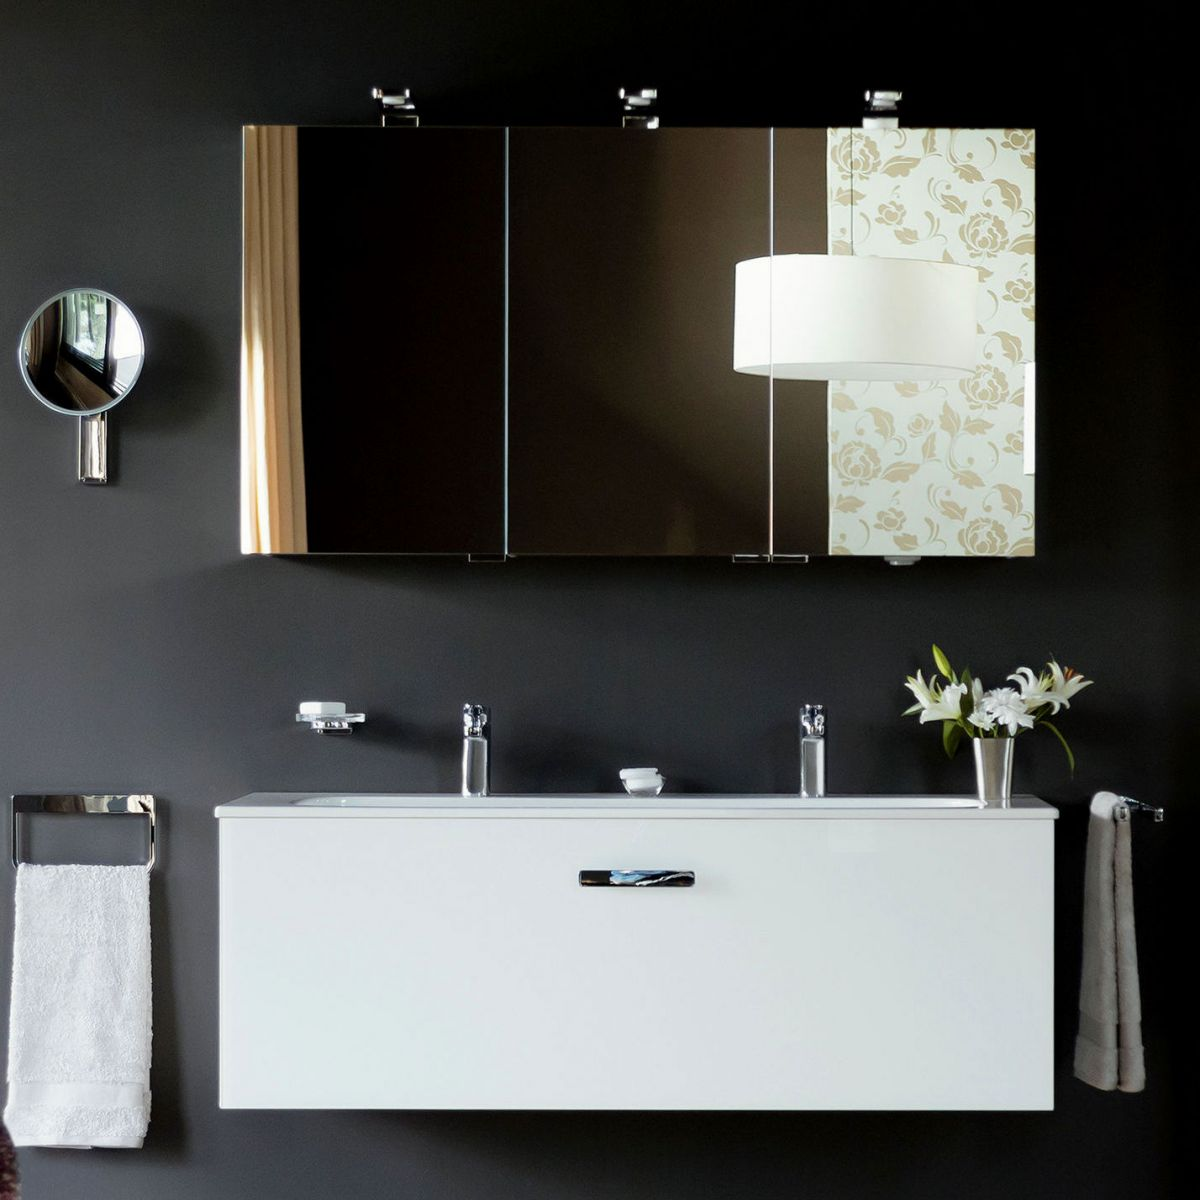 bathroom mirror wall cabinets keuco royal universe illuminated mirror cabinet uk bathrooms 16257